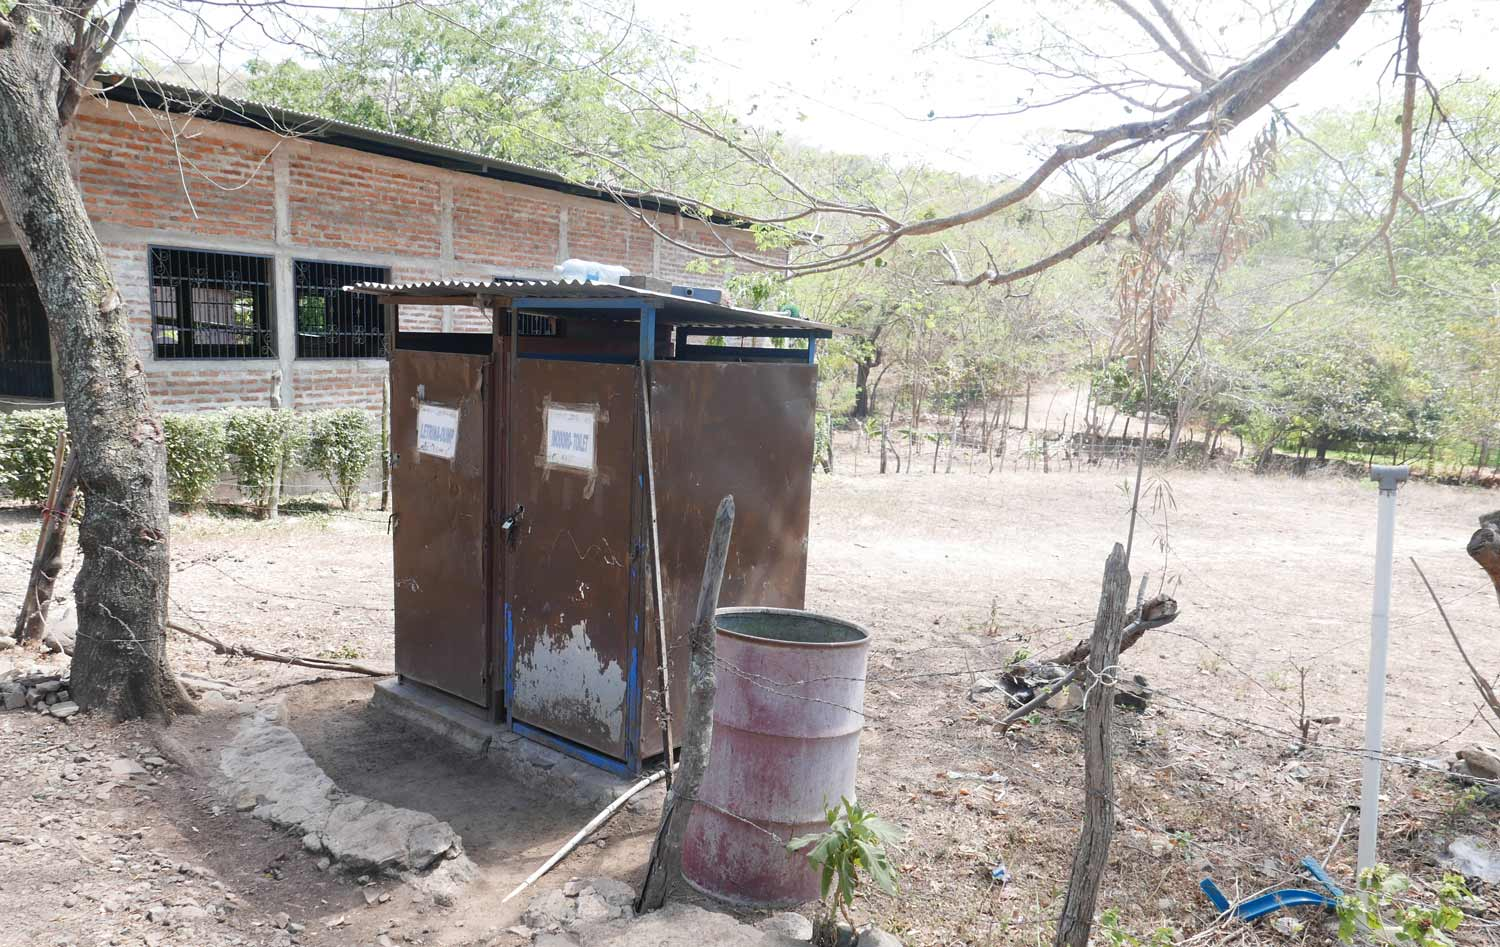 Toilets near the official entrance